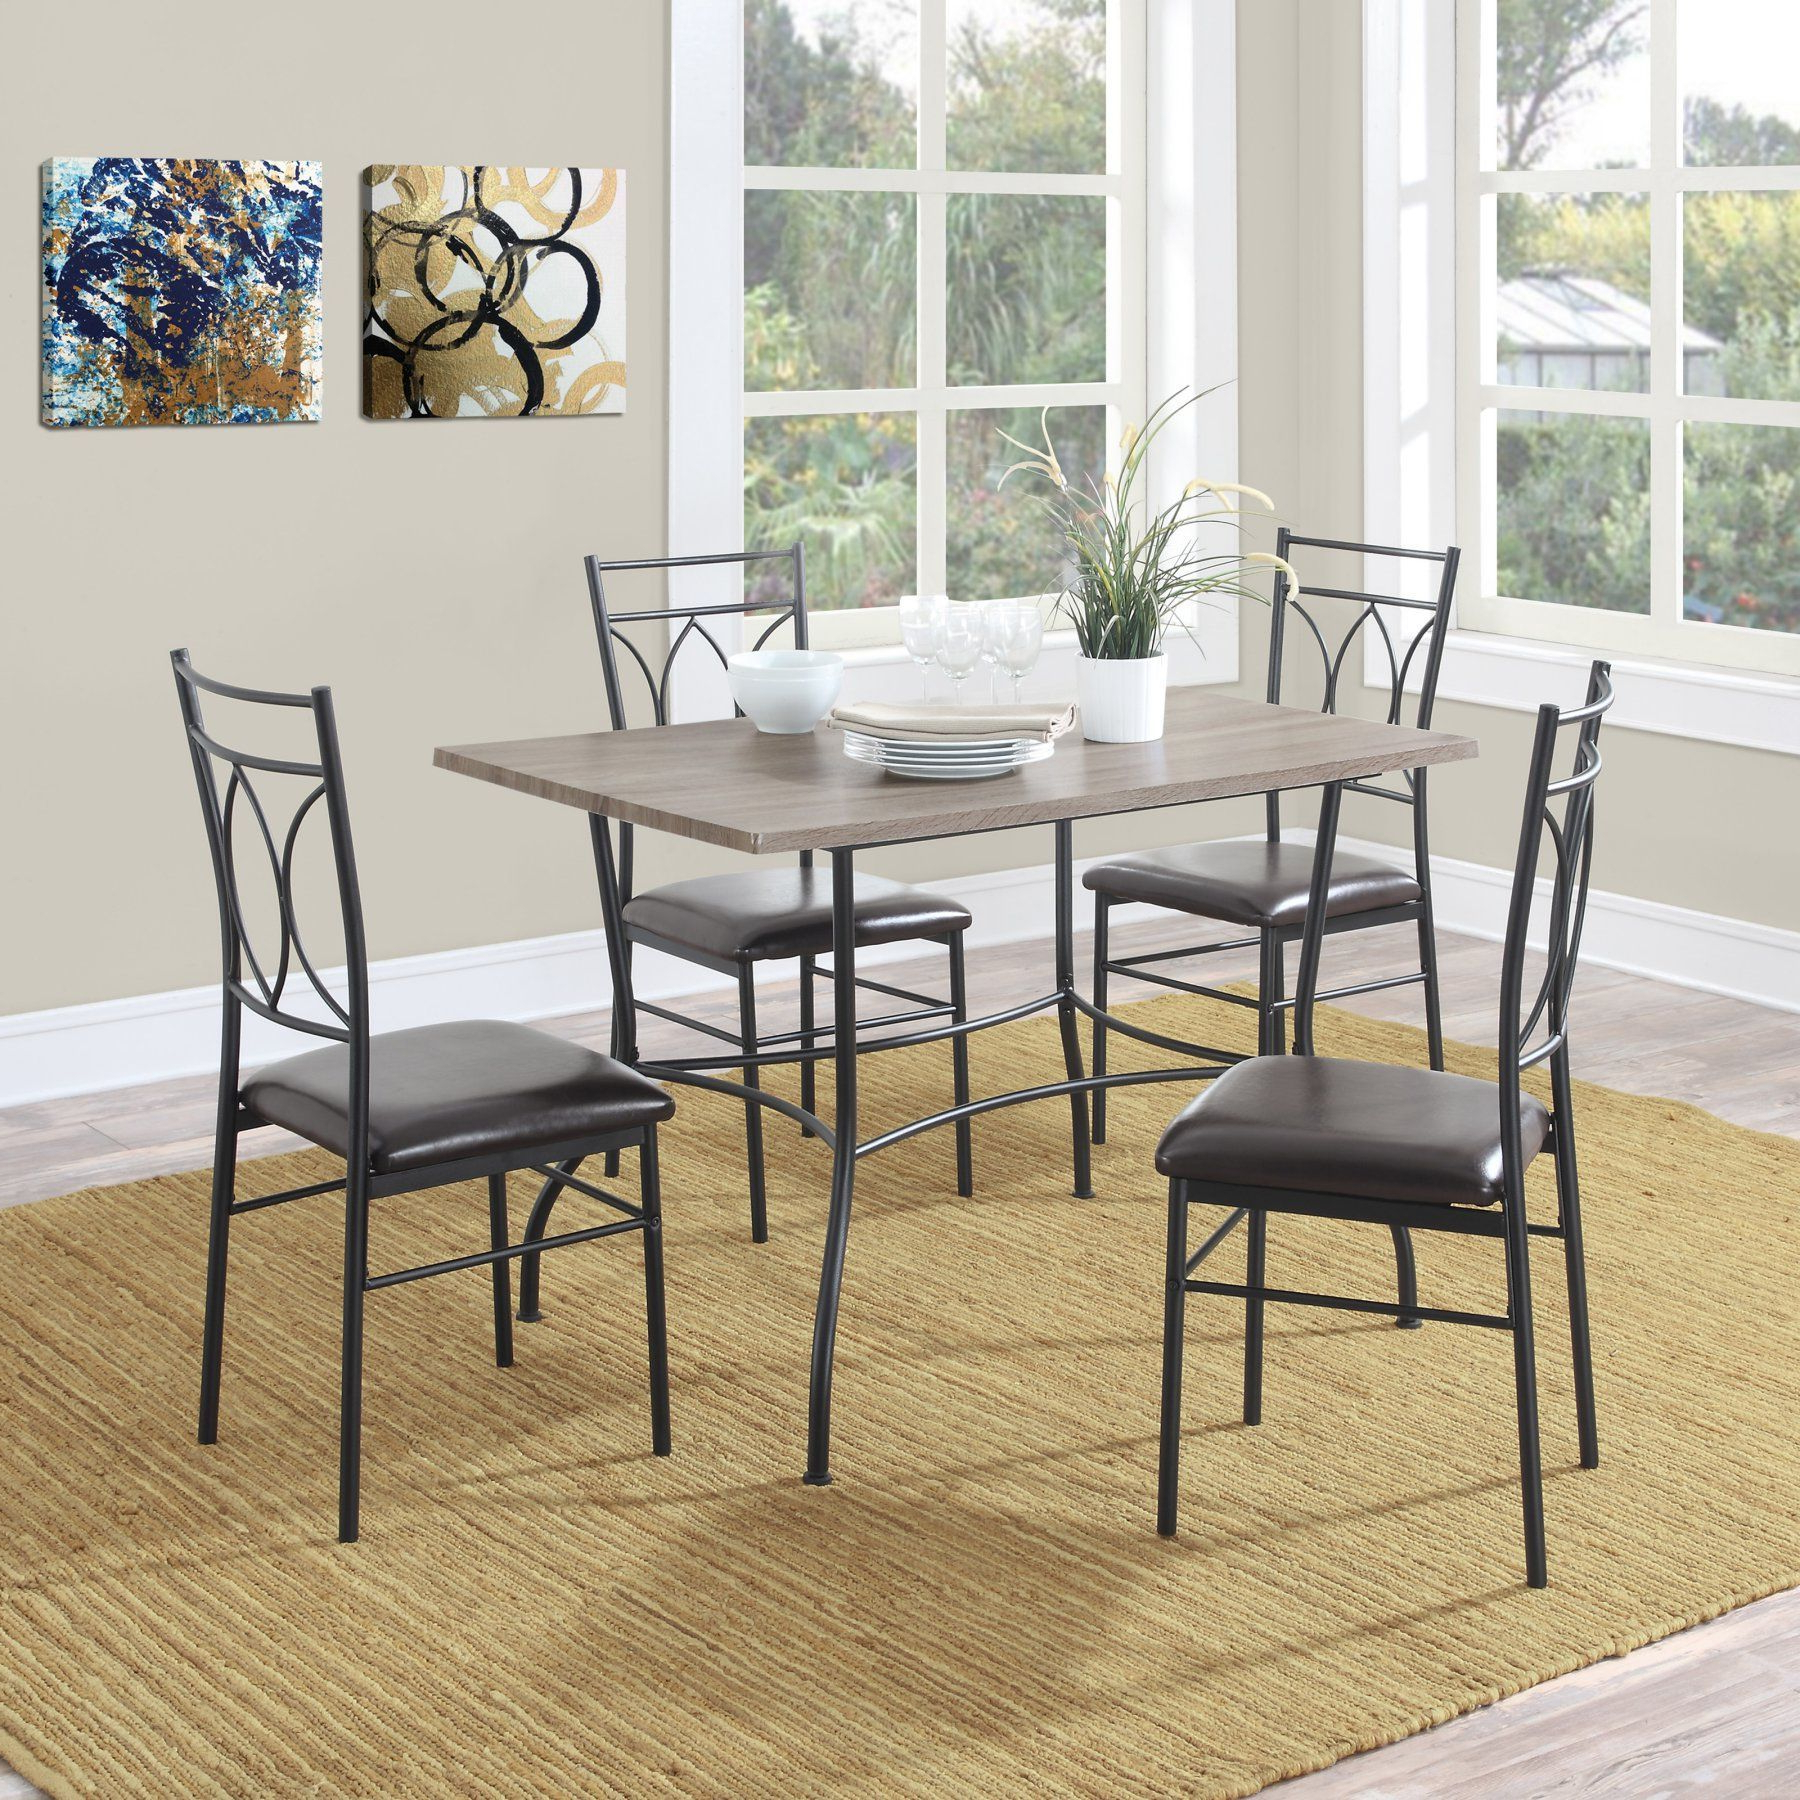 Wiggs 5 Piece Dining Sets With Trendy Dorel Living Shelby 5 Piece Rustic Wood & Metal Dining Set (View 9 of 25)